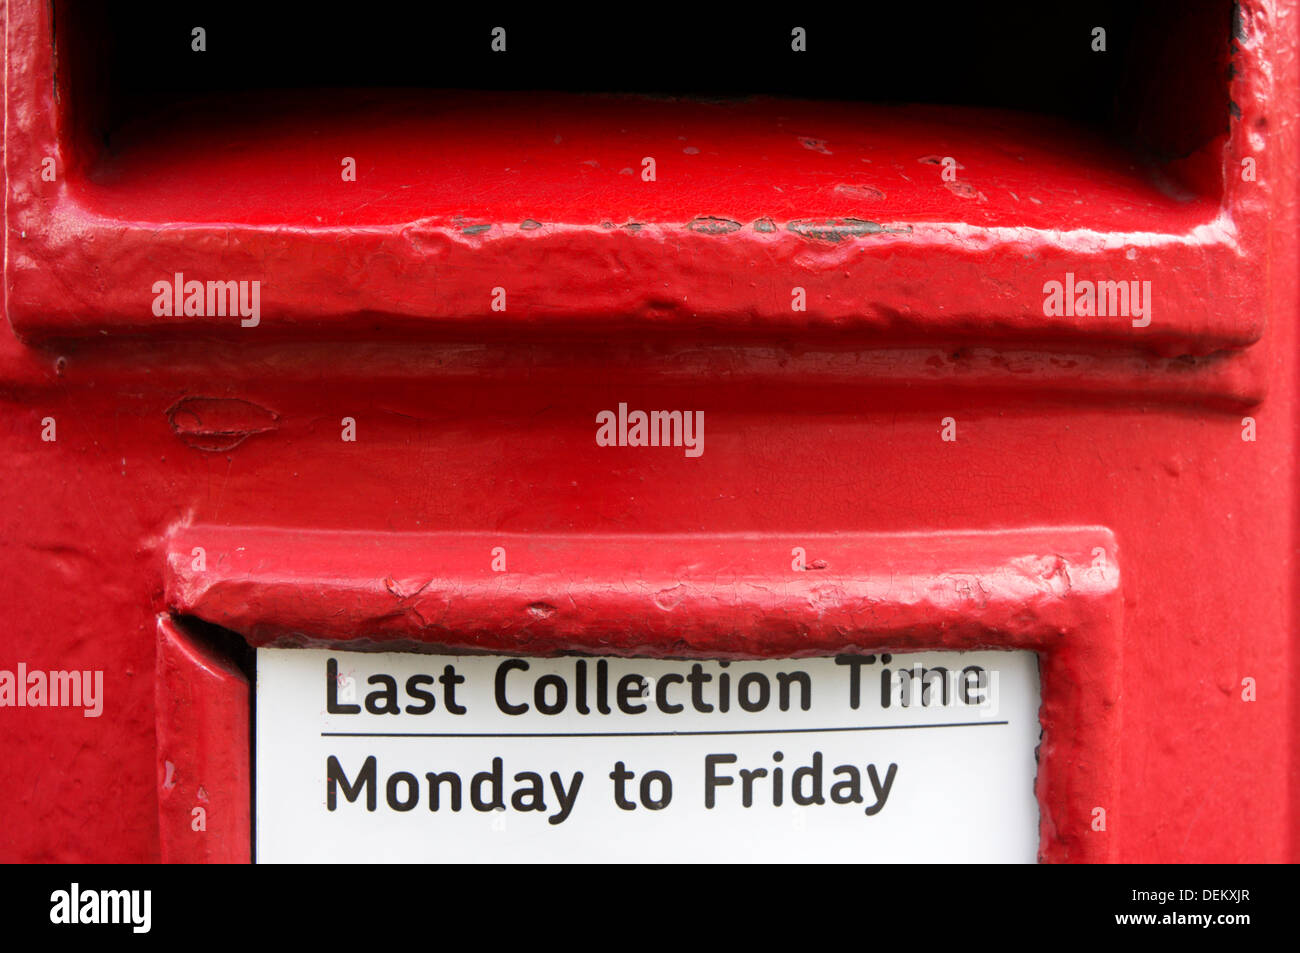 Last Collection Time displayed on a red British pillar box. - Stock Image